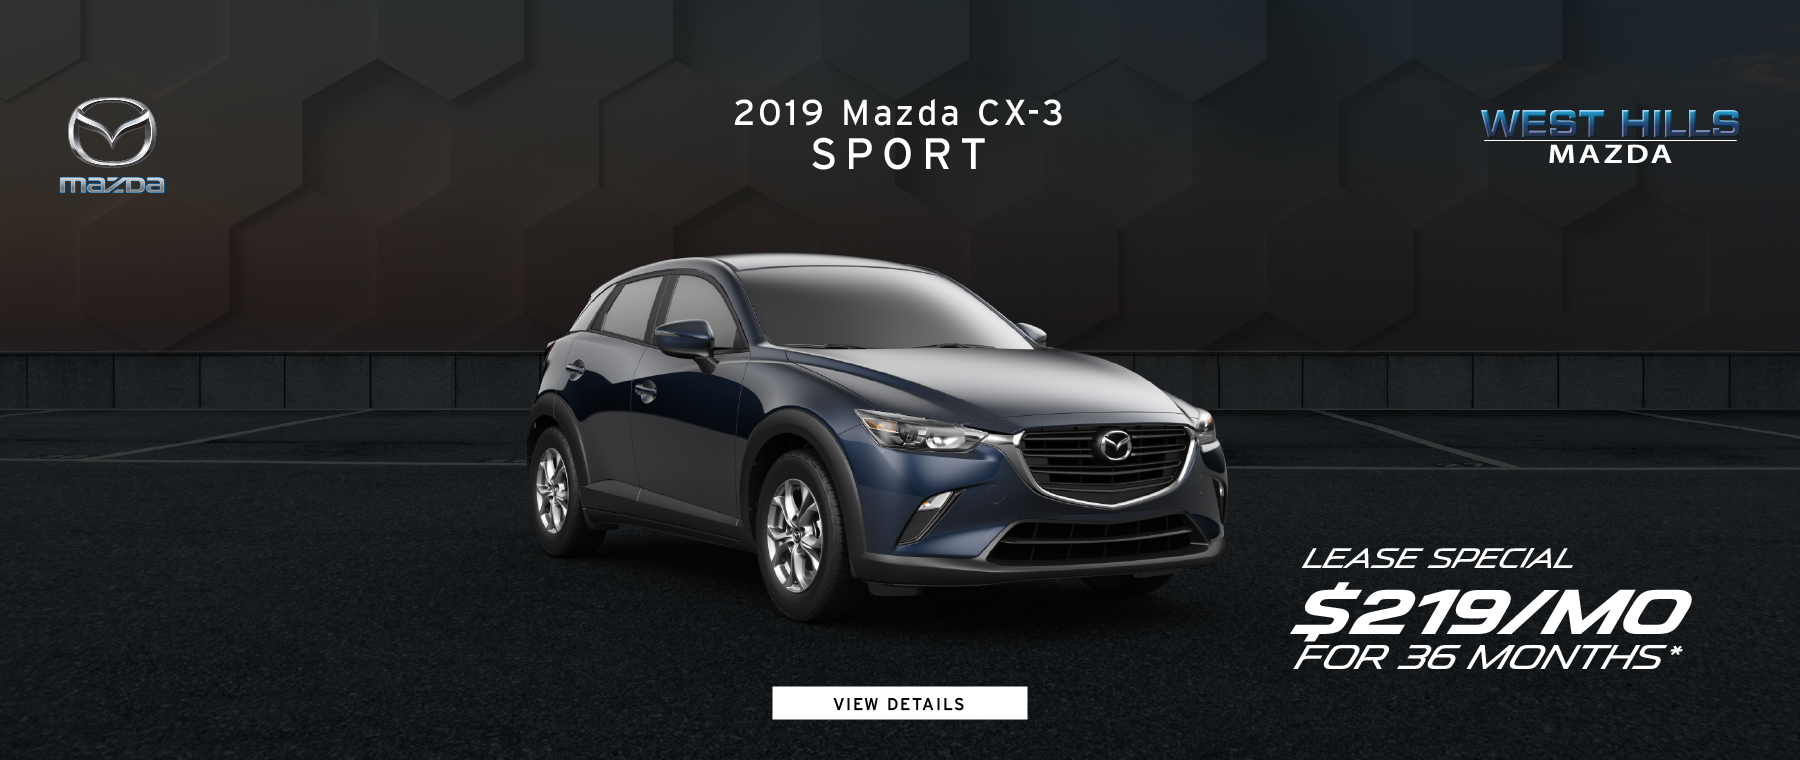 2019 Mazda CX-3 Sport   $219/mo. for 36 mos.* *Valid on 2019 Mazda CX-3 Sport. $219 per month for 36 months. $3,000 due at lease signing; includes a $595 acquisition fee. Valid on VIN: JM1DKDB74K1451930. MSRP is $21,735. No security deposit with approved credit. Lease for well qualified buyers. Excludes taxes, title, and fees. 36 monthly payments required. Not all lessees will qualify for lowest payment through participating lender. Residency restrictions apply. Lessee responsible for registration, insurance, maintenance, excess wear/tear & for mileage over 10,000 miles/per year at $0.15/mile per year. Option to purchase at lease end. A negotiable dealer documentary service fee of up to $150 may be added to the sale price or capitalized cost. Offer Expires: 9/3/2019.